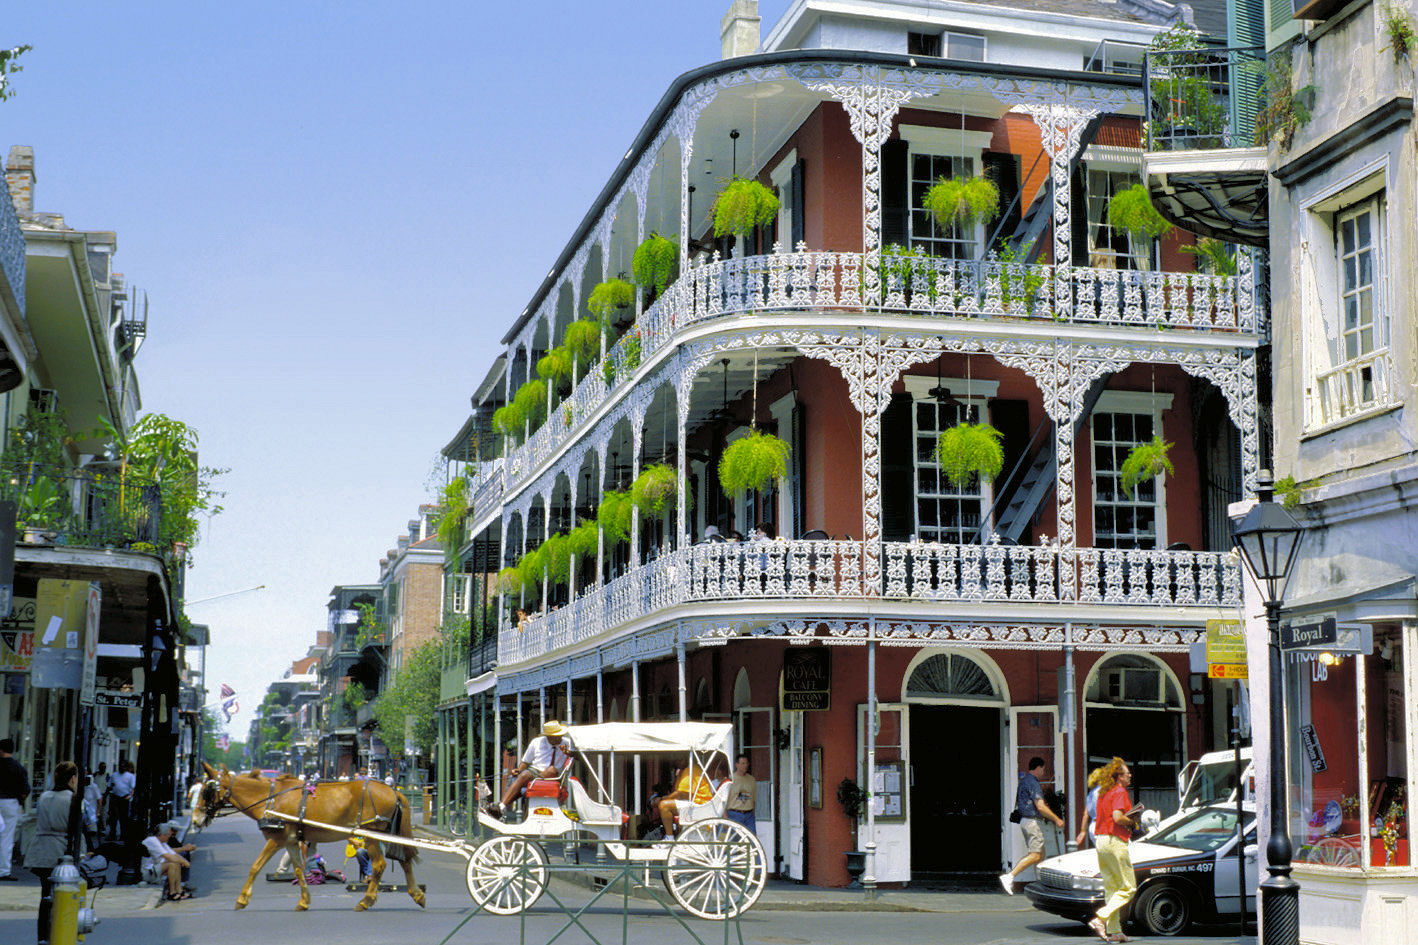 https://i2.wp.com/www.preferredcasinotours.com/wp-content/uploads/2014/11/gregory-gopman-new-orleans.jpg